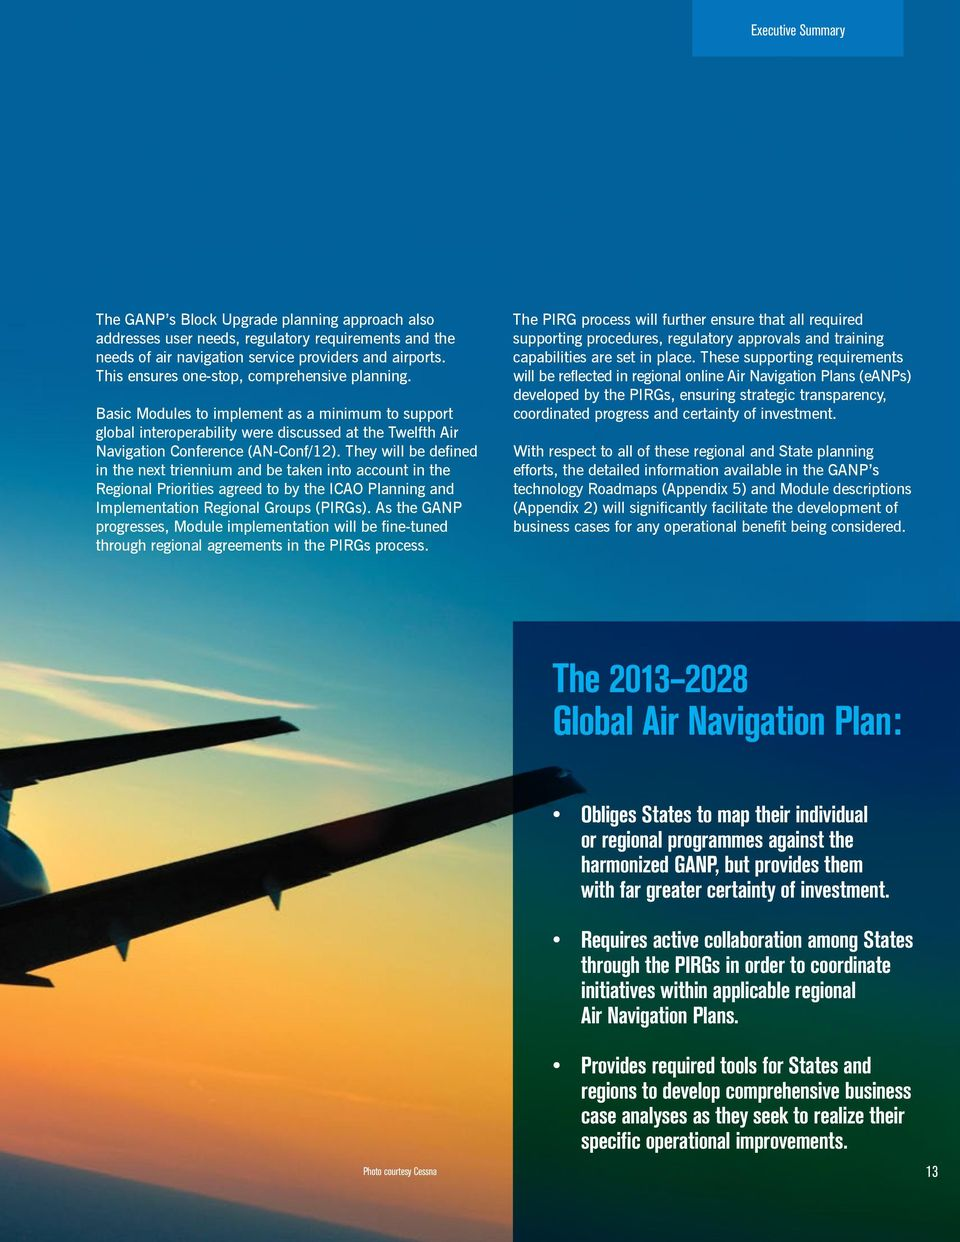 They will be defined in the next triennium and be taken into account in the Regional Priorities agreed to by the ICAO Planning and Implementation Regional Groups (PIRGs).